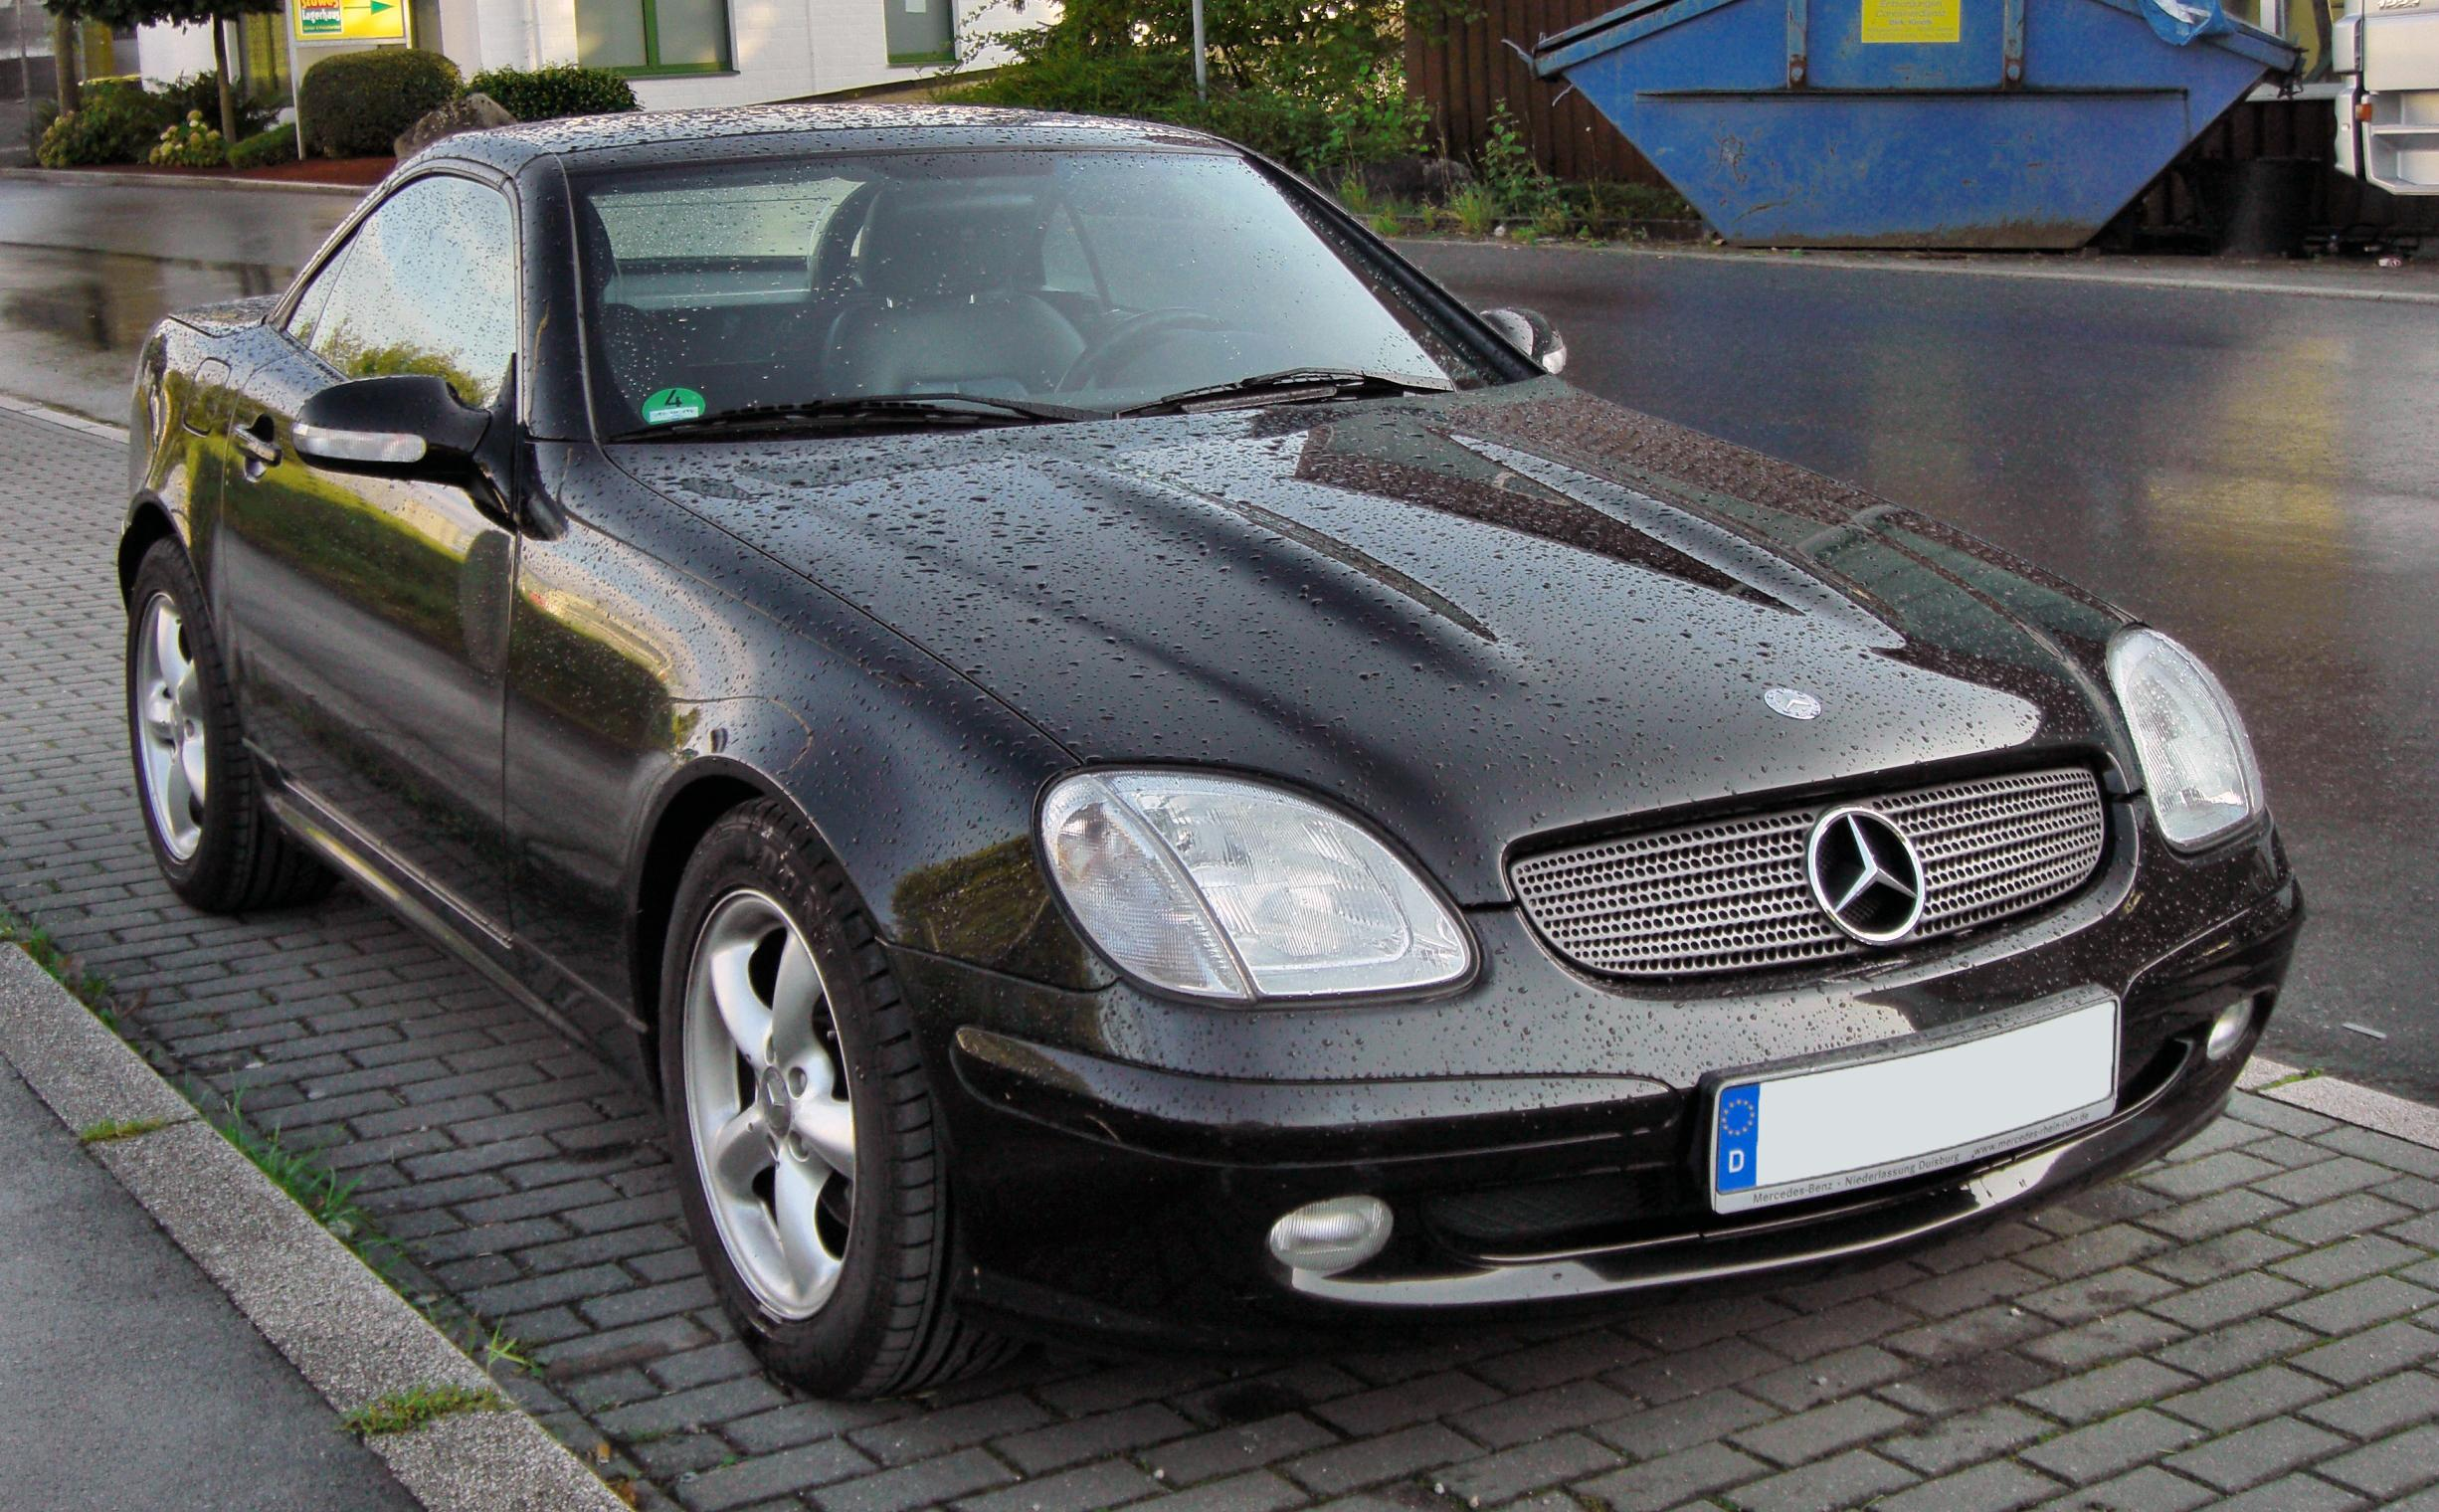 file mercedes slk 320 facelift 20090904 front jpg wikimedia commons. Black Bedroom Furniture Sets. Home Design Ideas